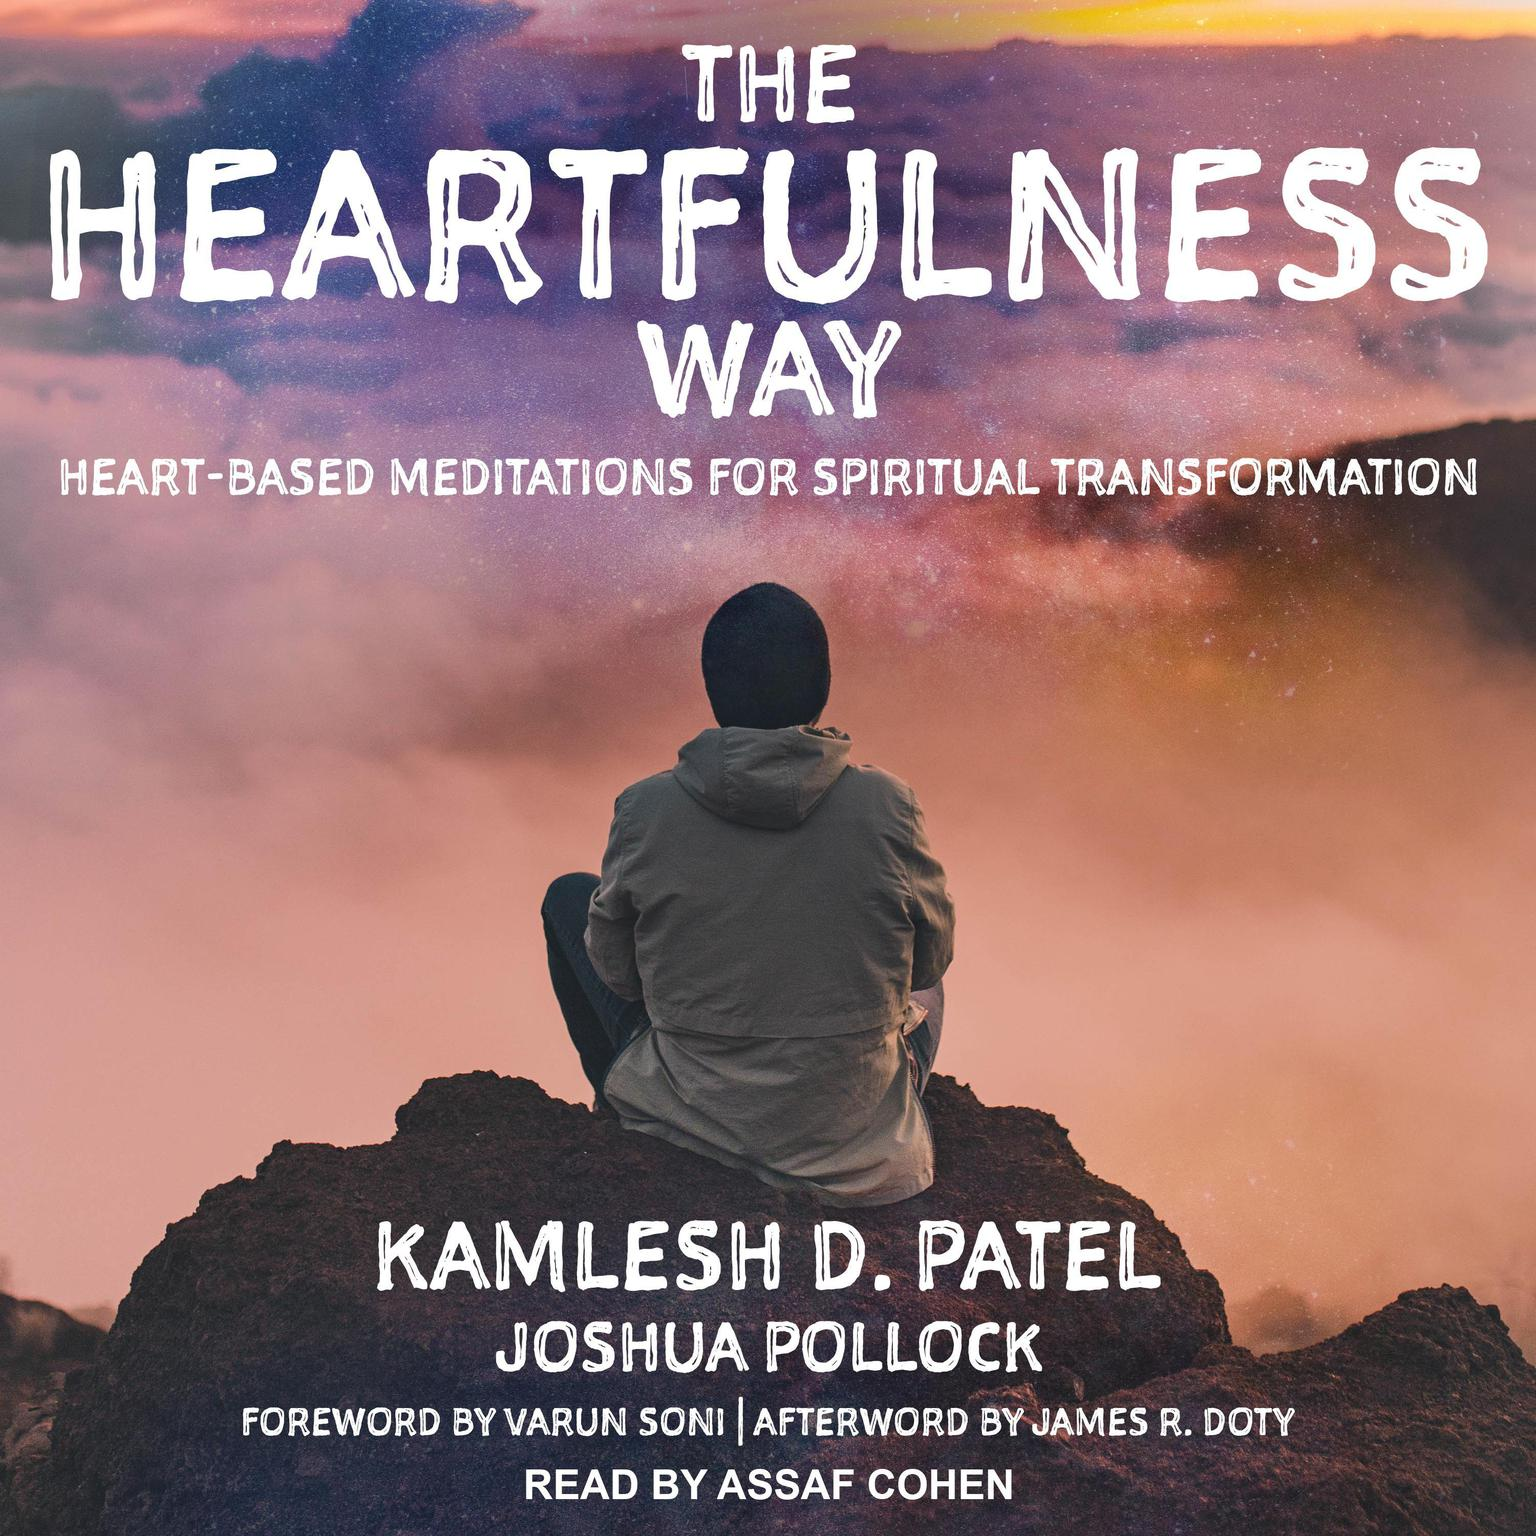 The Heartfulness Way: Heart-Based Meditations for Spiritual Transformation Audiobook, by Kamlesh D. Patel